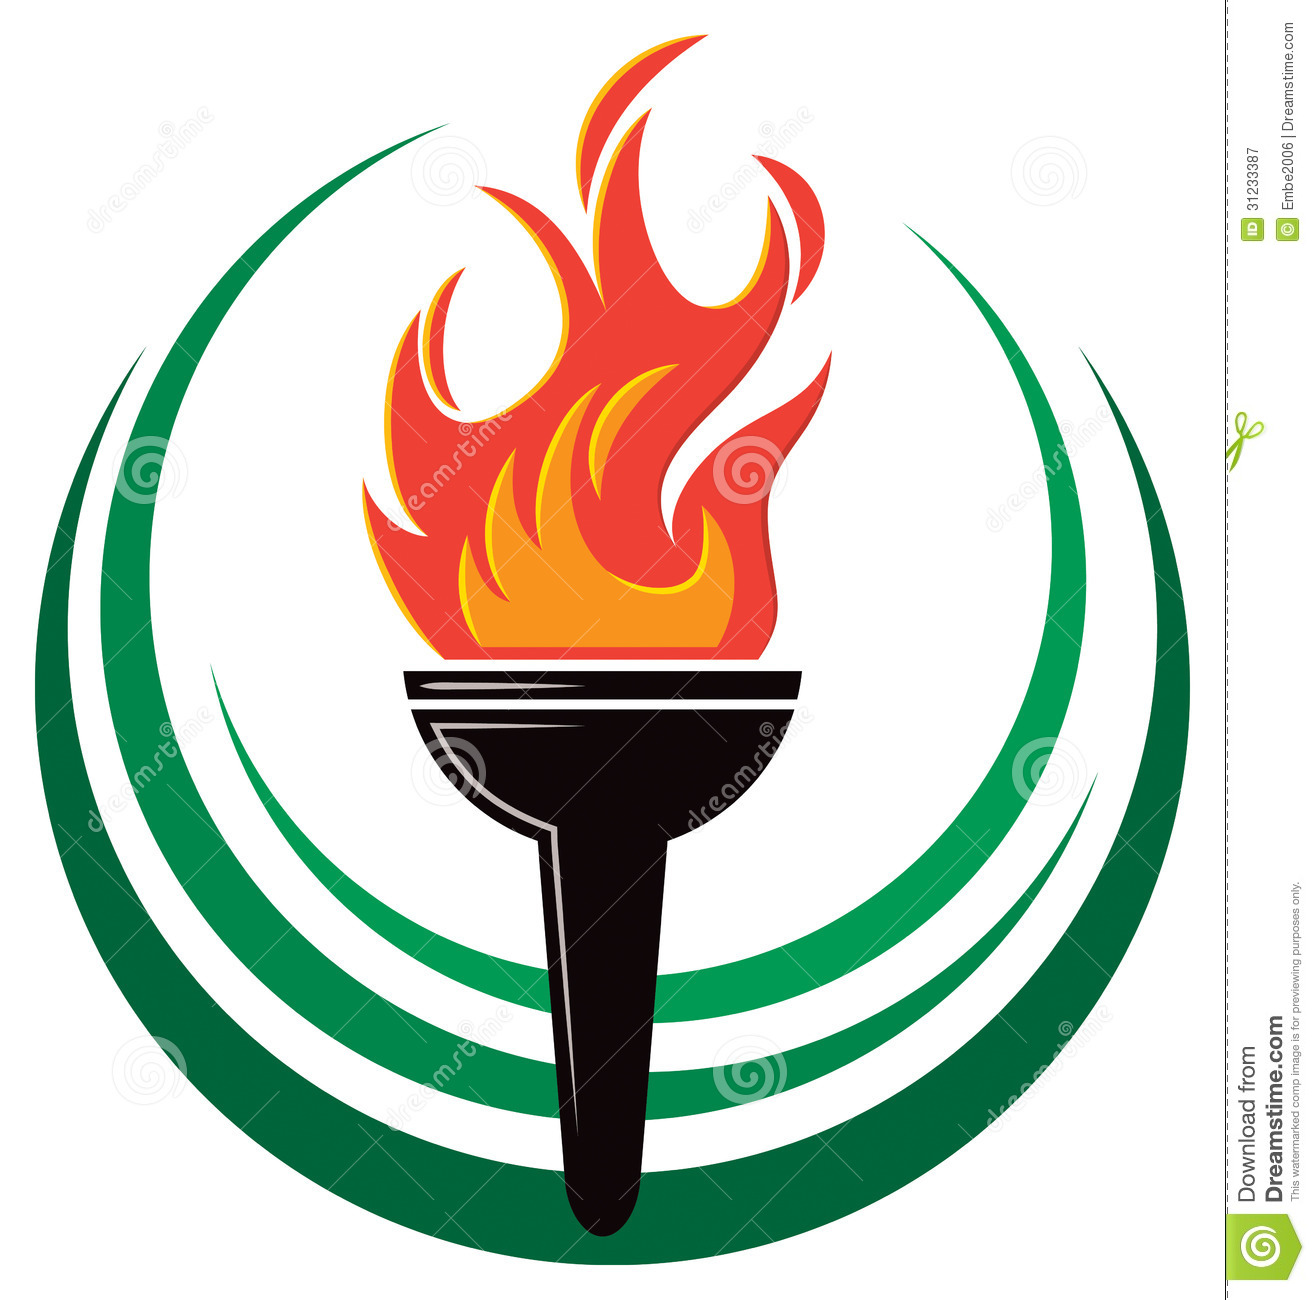 Flame Torch Logo Royalty Free Stock Photography - Image: 31233387